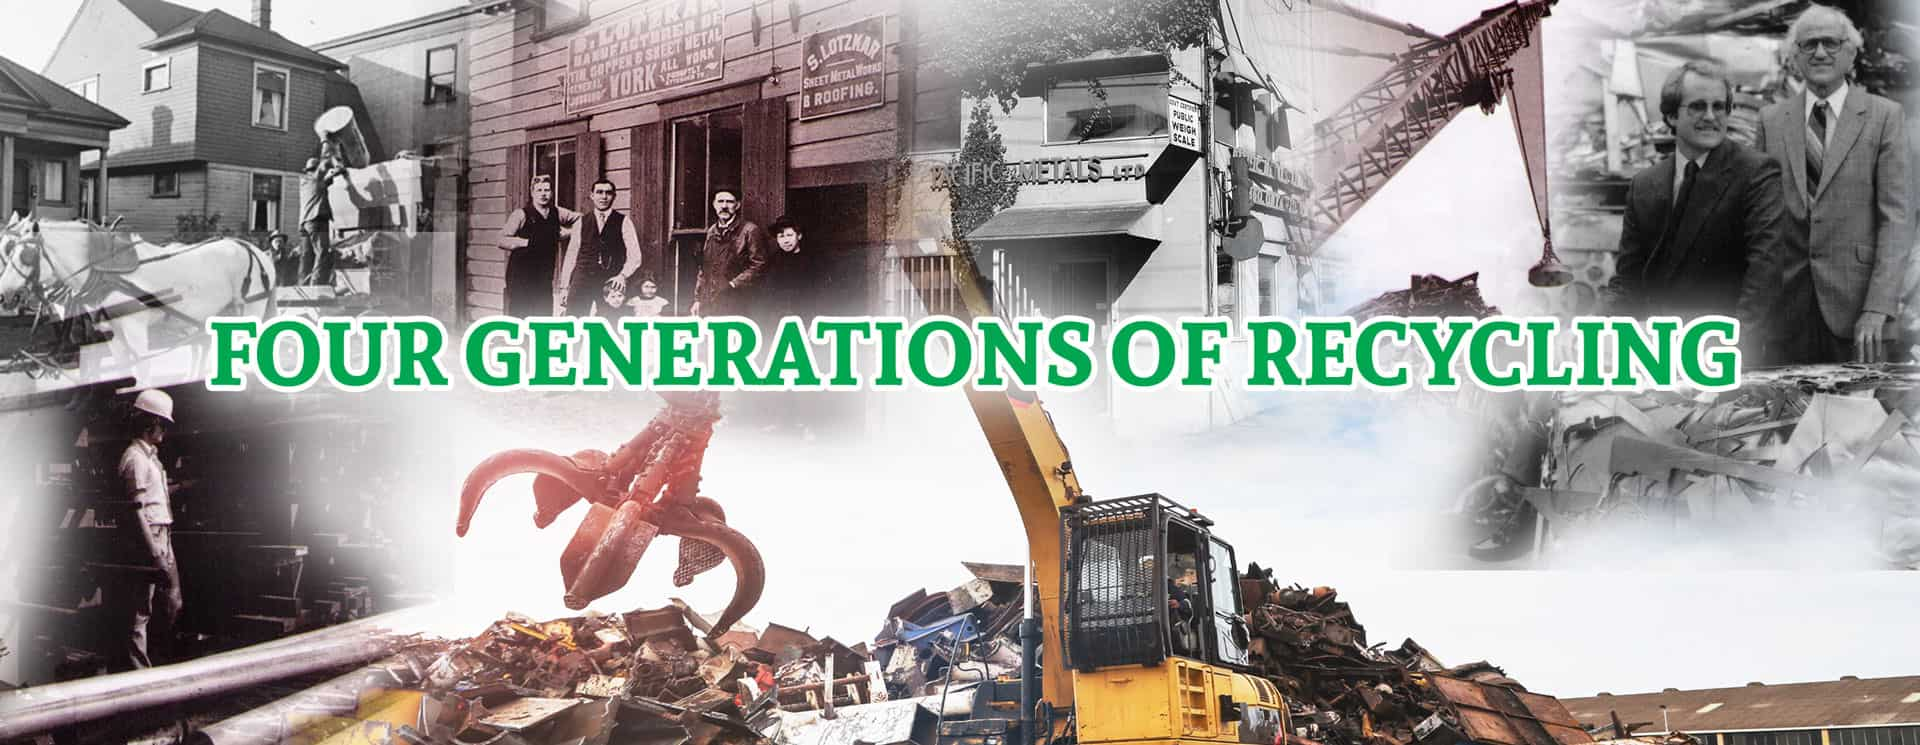 An image of four generations of recycling history